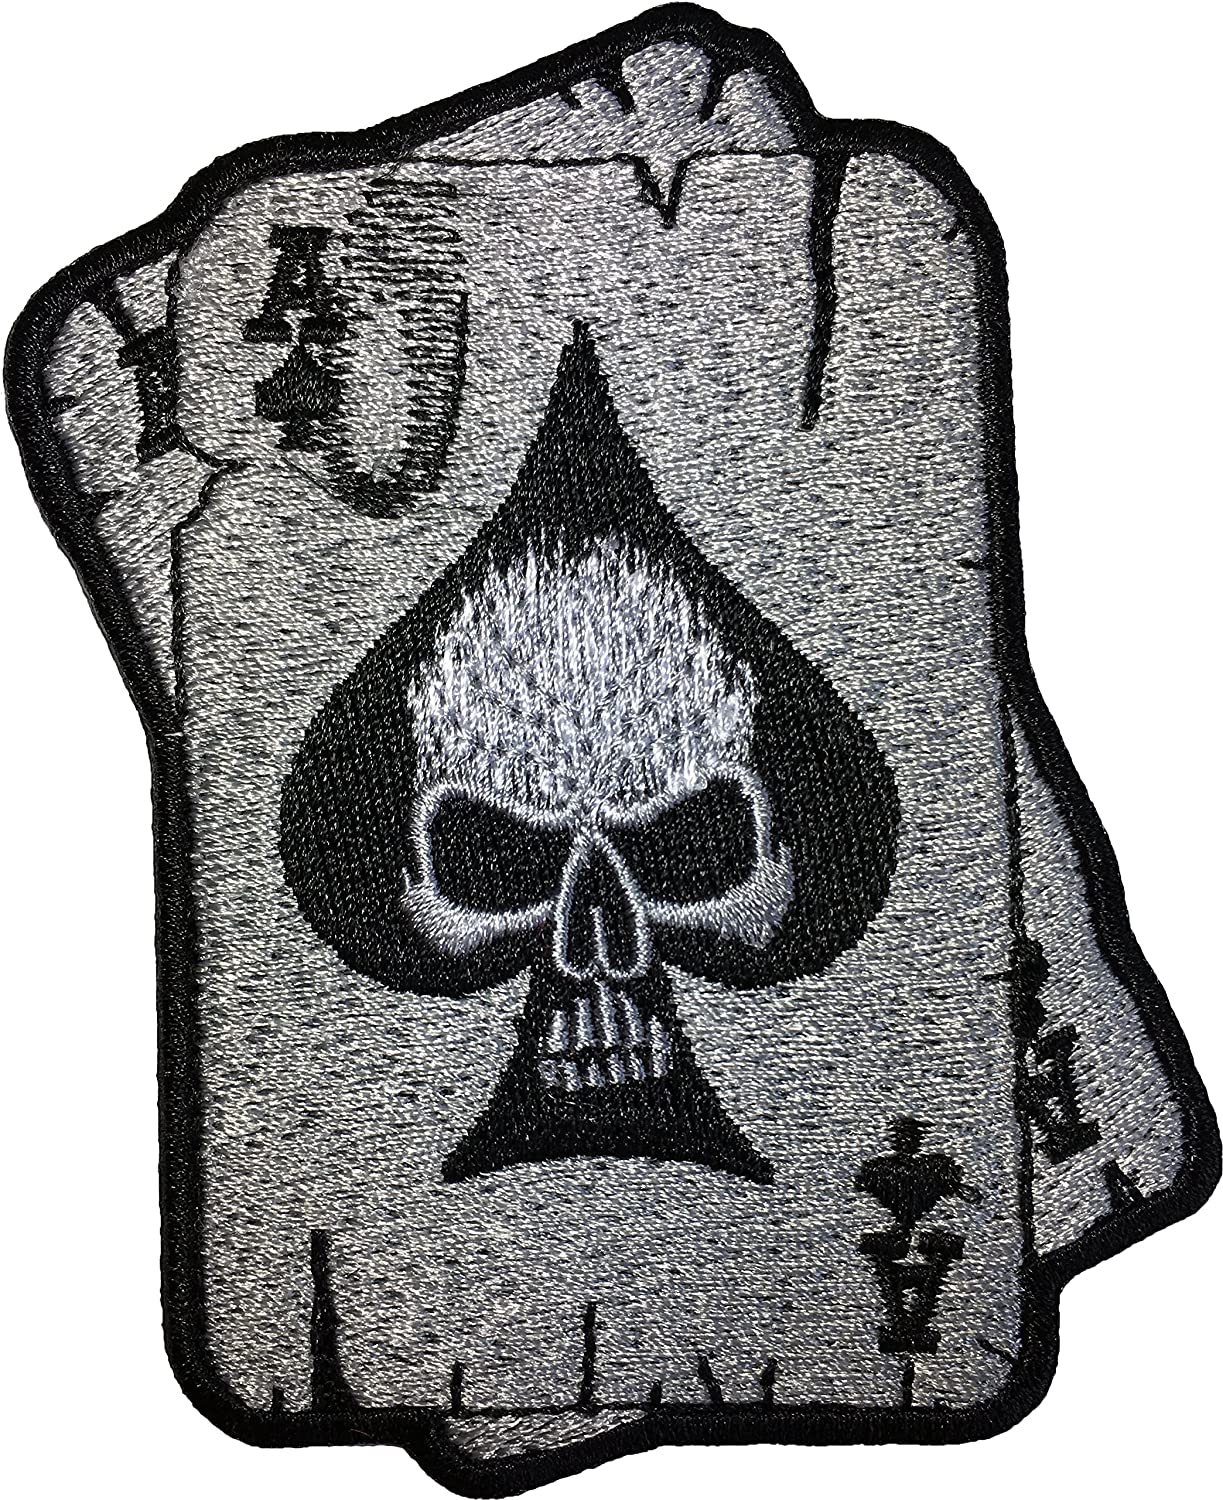 LEATHER day of the dead death skull patch  Motorcycle Biker Patch